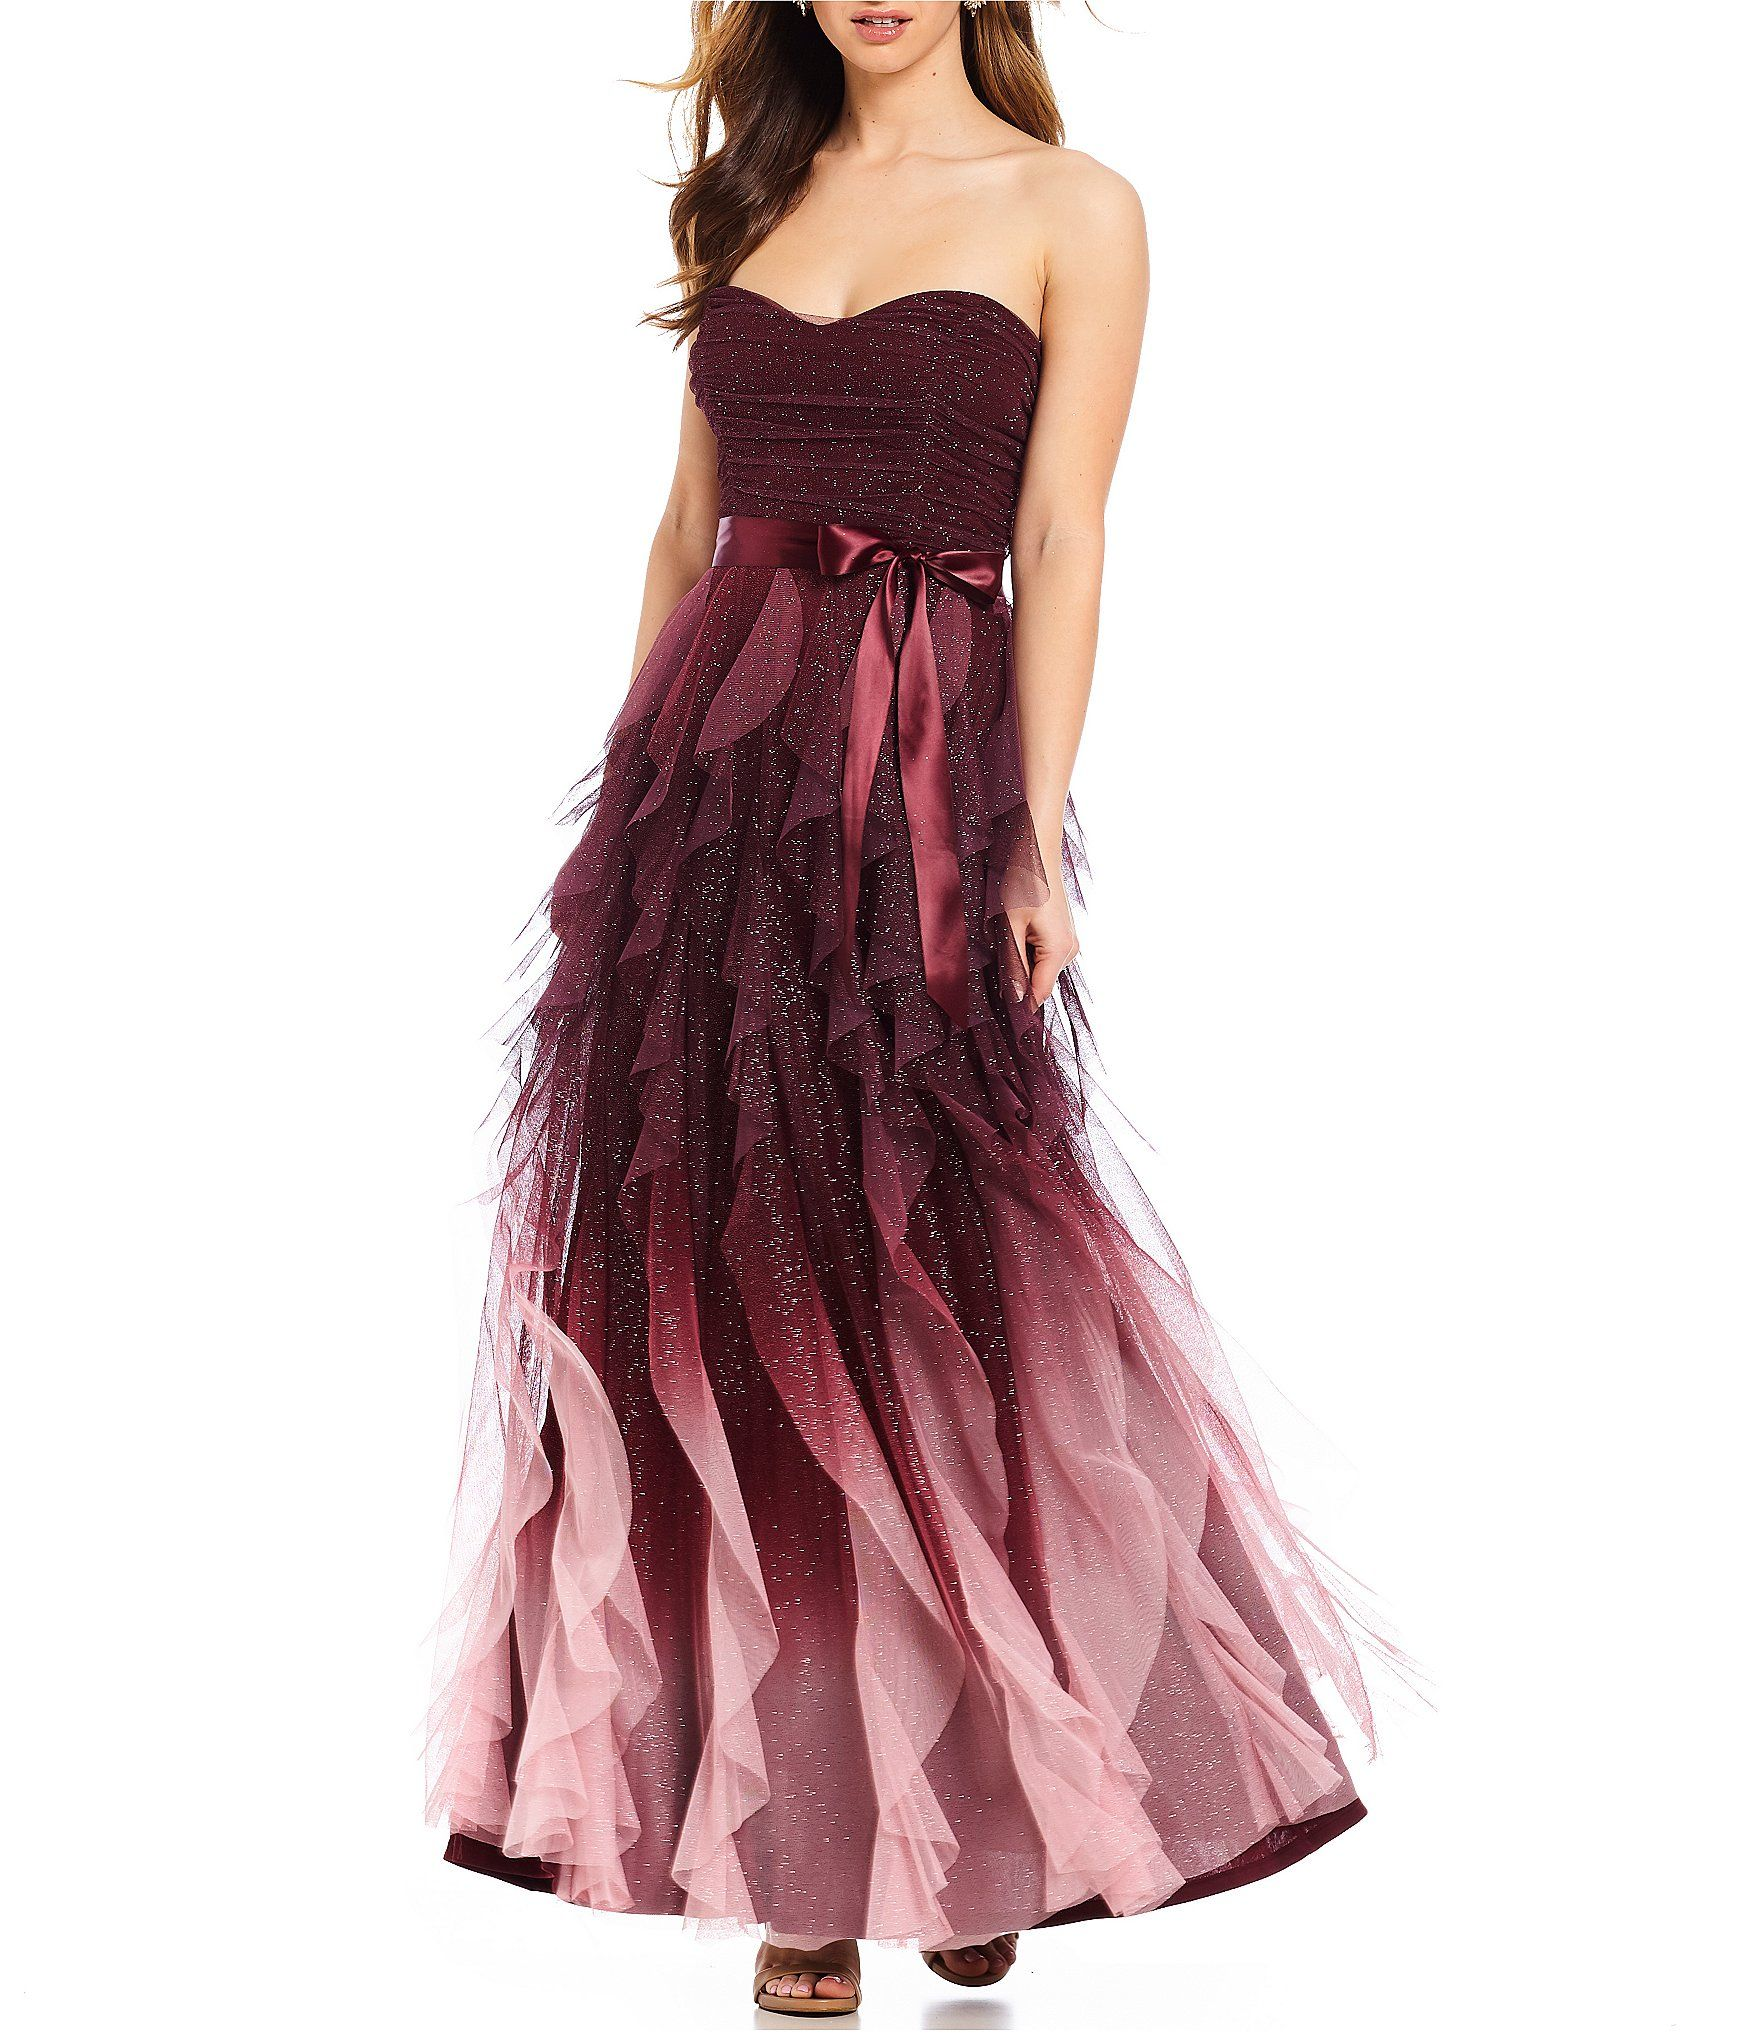 Shop for Teeze Me Strapless Glitter Ombre Corkscrew Long Dress at  Dillards.com. Visit Dillards.com to find clothing 7db9bc3f7